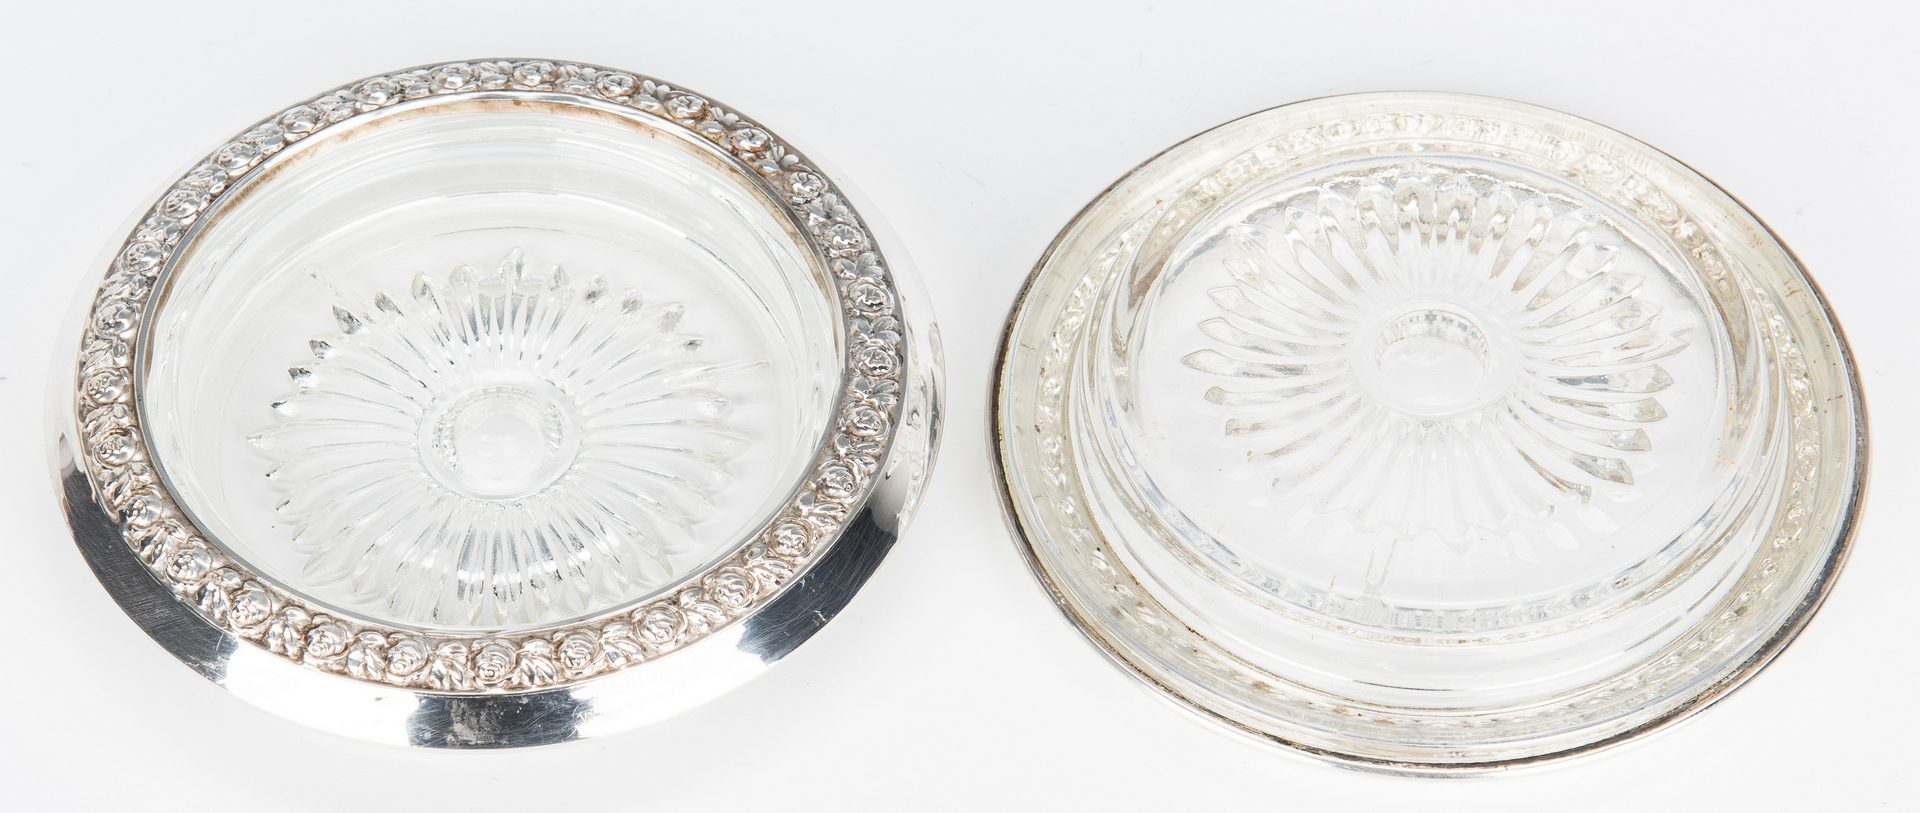 Lot 357: Assorted Sterling Weighted Items